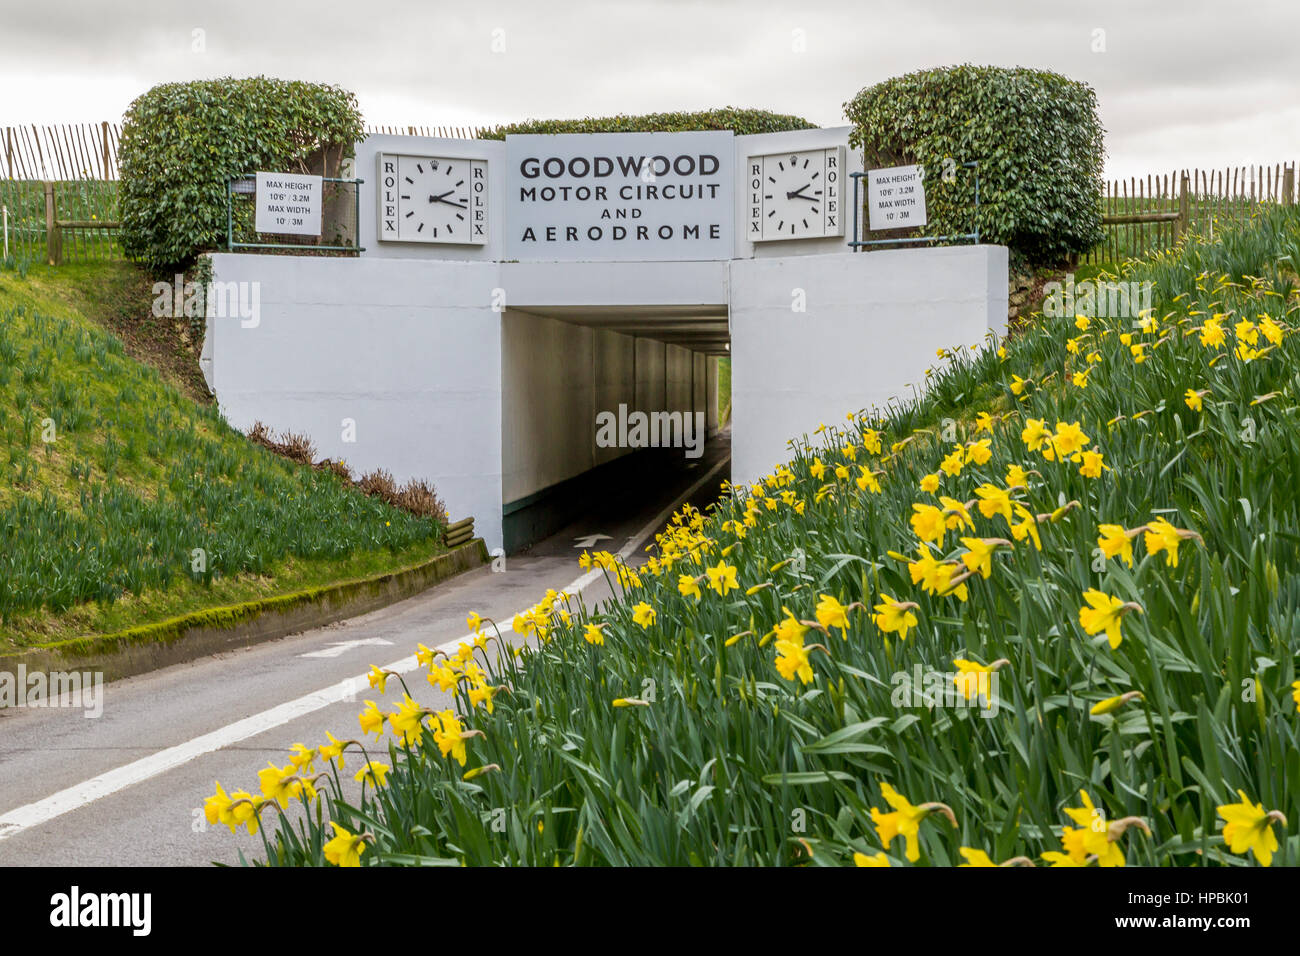 Goodwood motor racing circuit tunnel entrance, West Sussex, England UK - Stock Image